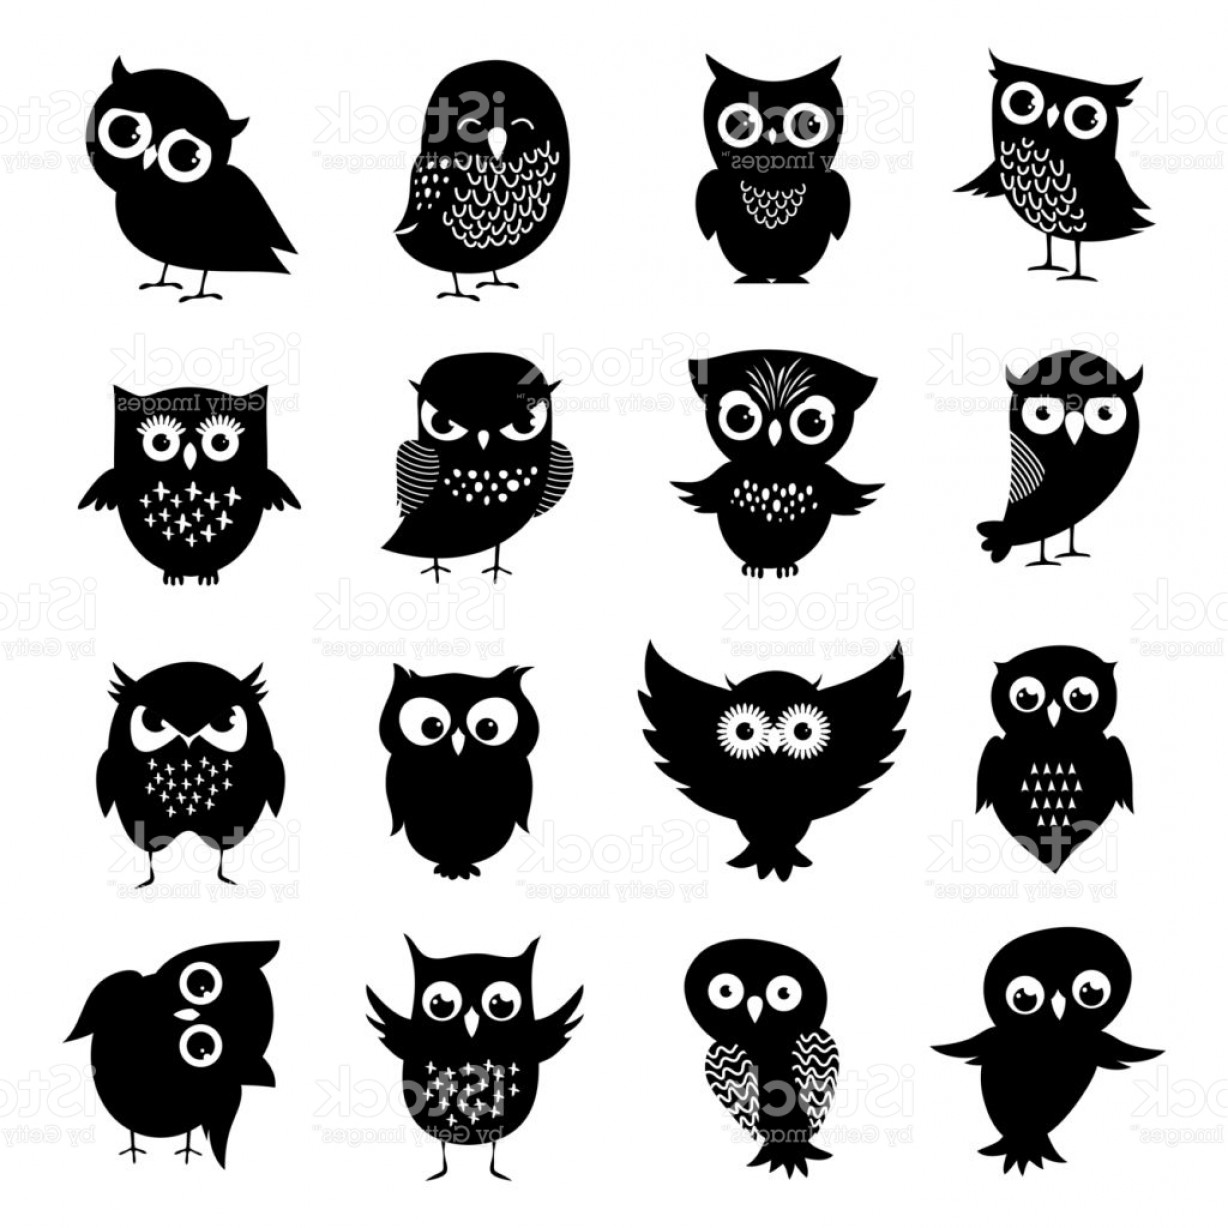 Owl Silhouette Vector Art: Black And White Owl Silhouettes Set Gm